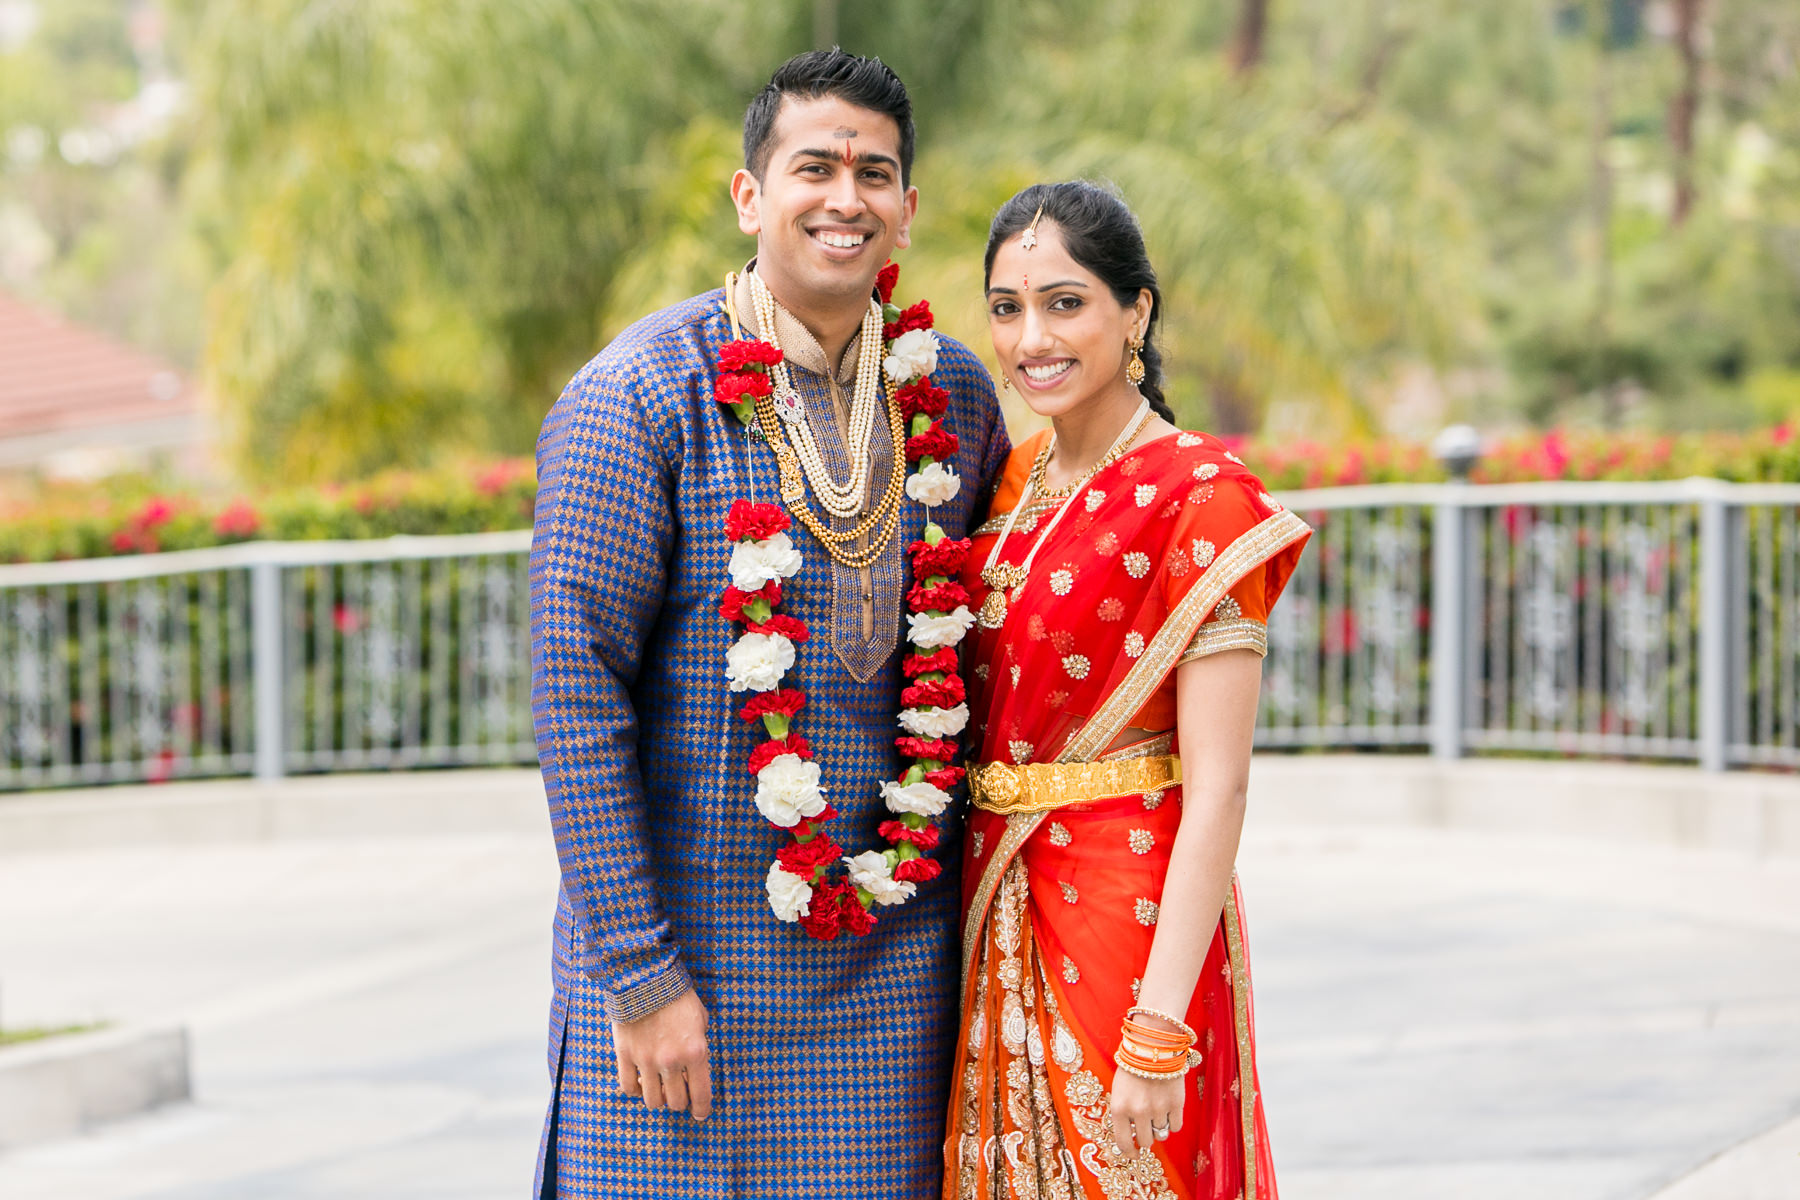 standard portrait of indian groom and bride in sari during indian wedding photographer in southern california